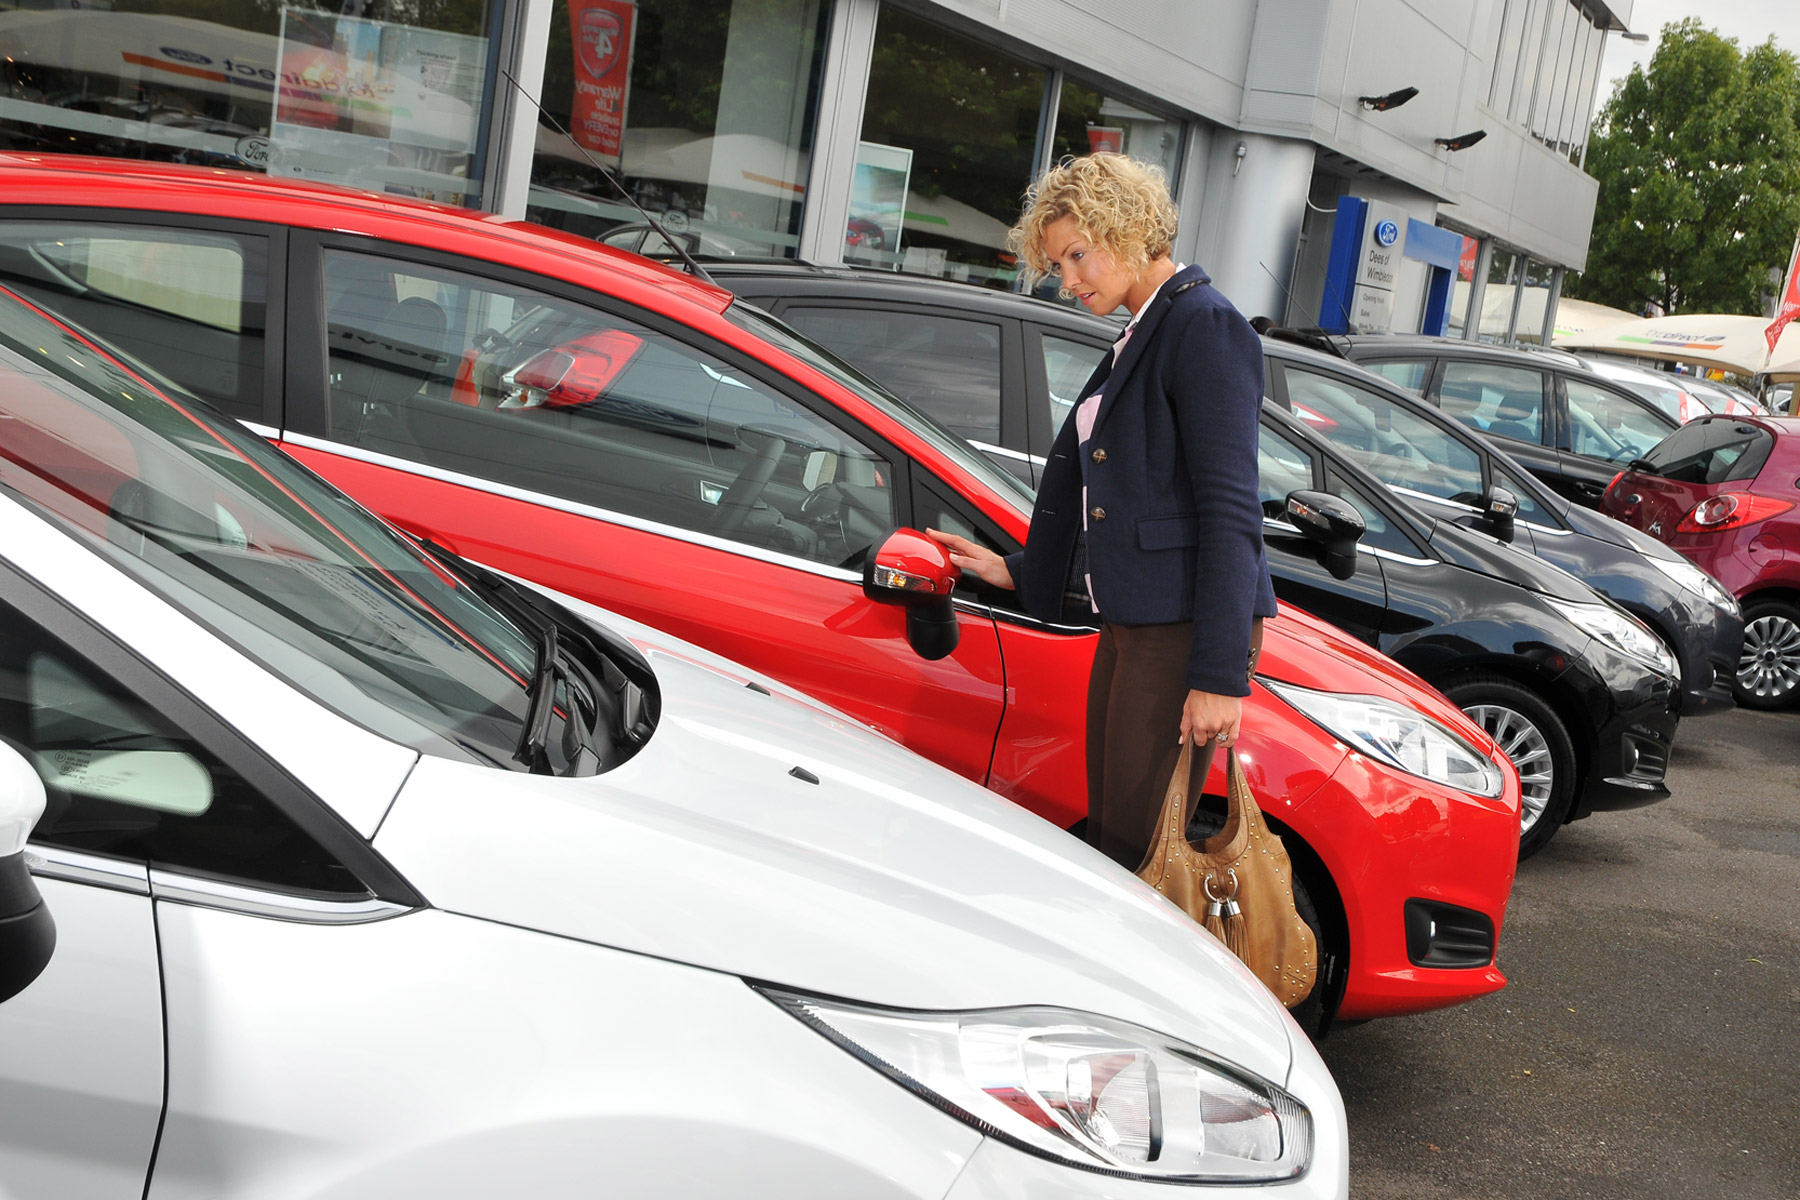 Revealed: the reasons why no one wants to buy your car